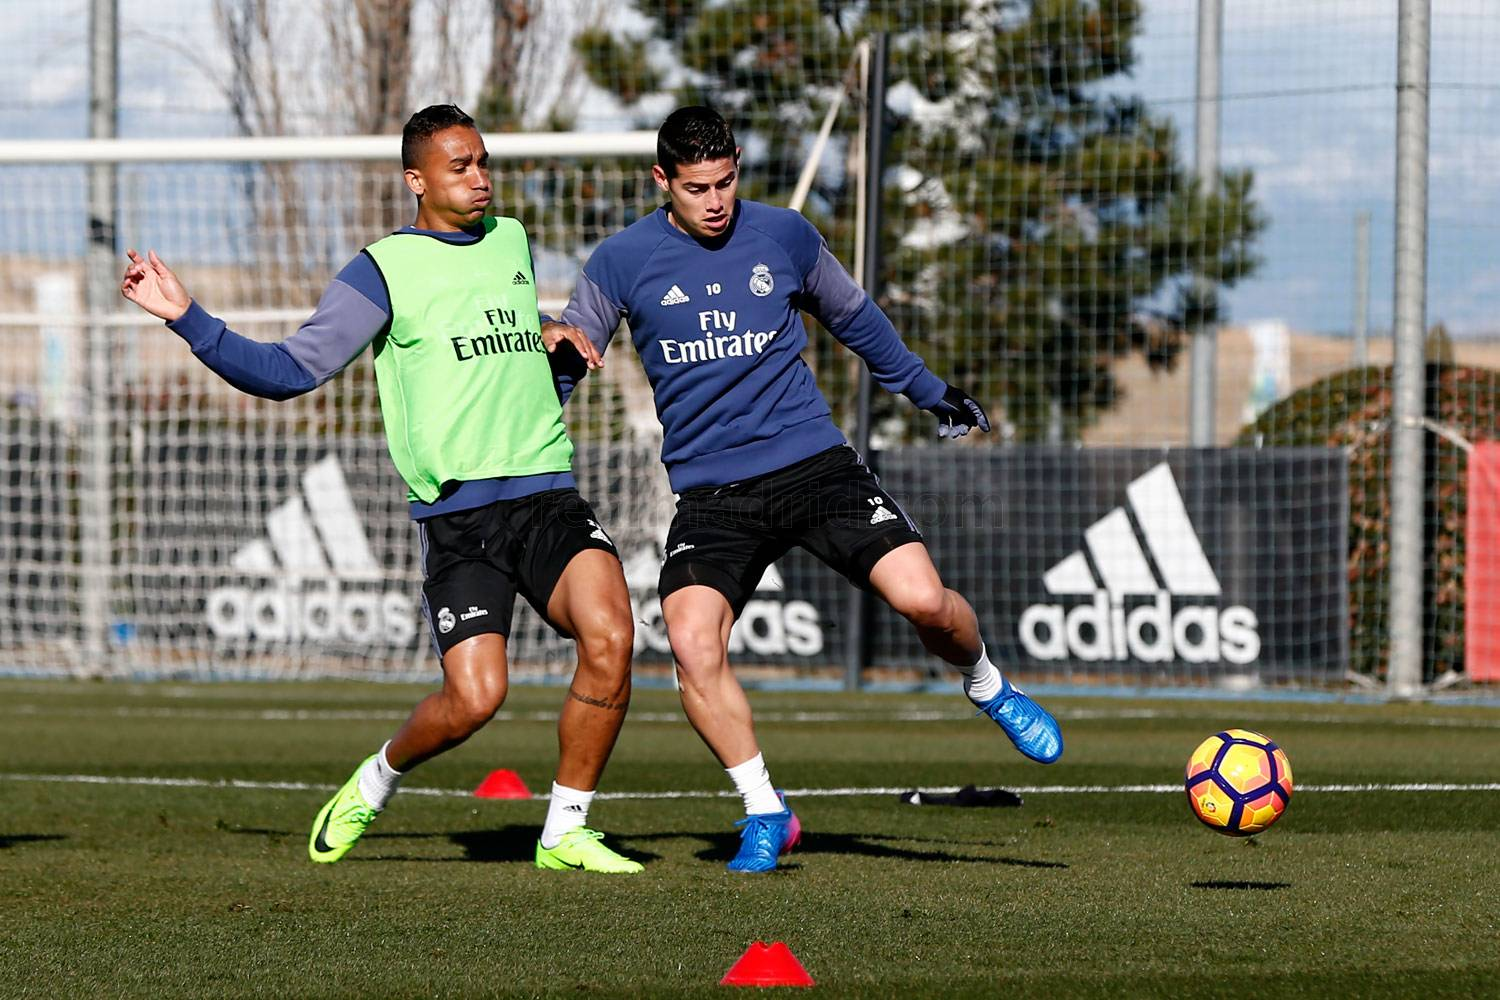 Real Madrid - Entrenamiento del Real Madrid - 08-02-2017